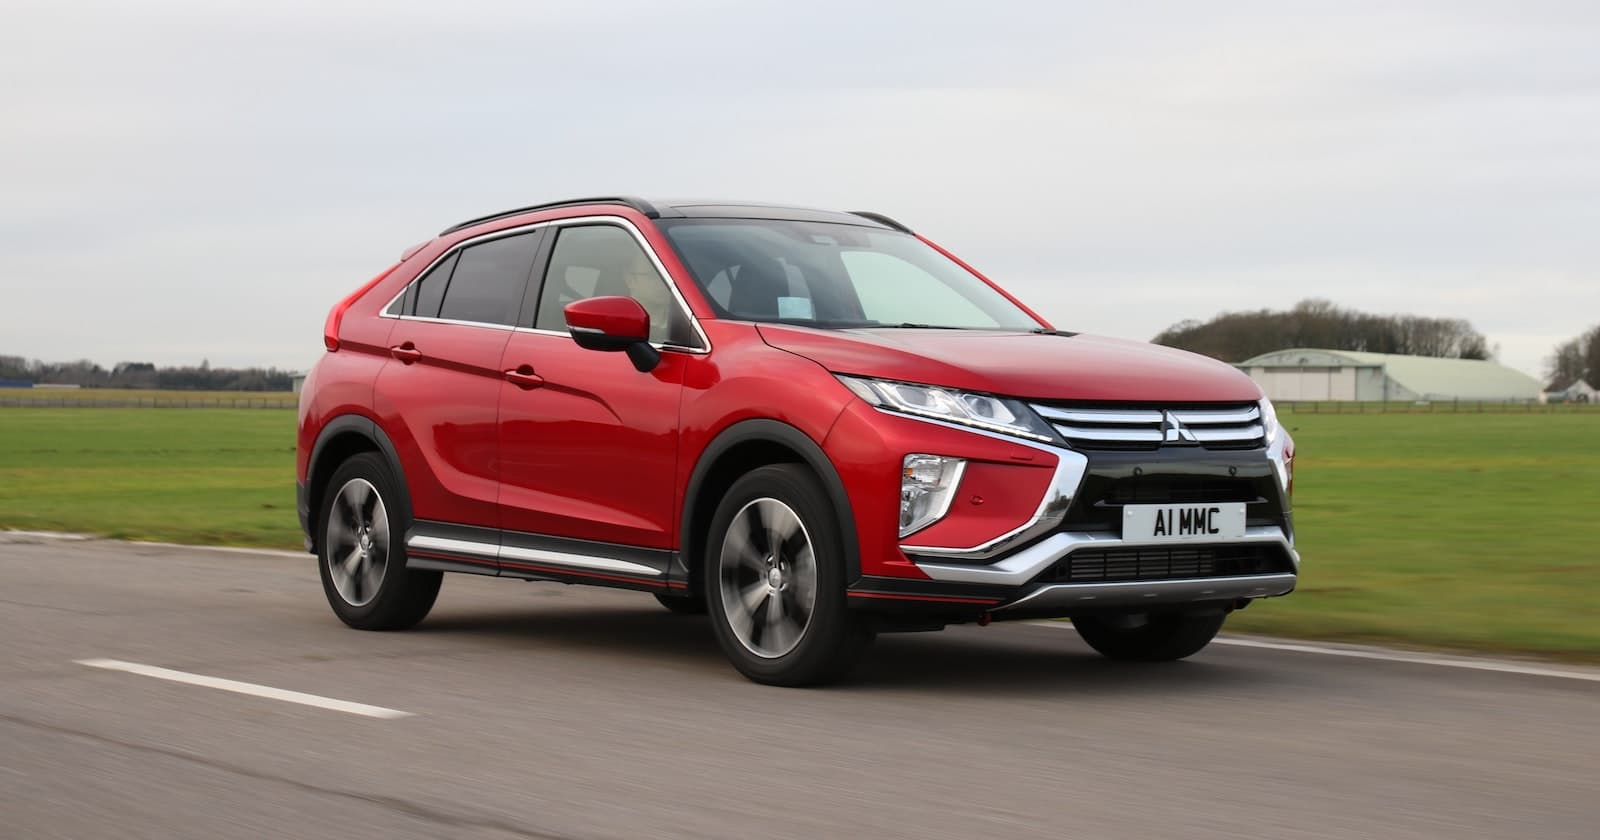 Mitsubishi Eclipse Cross (2018) new car ratings and reviews | The Car Expert